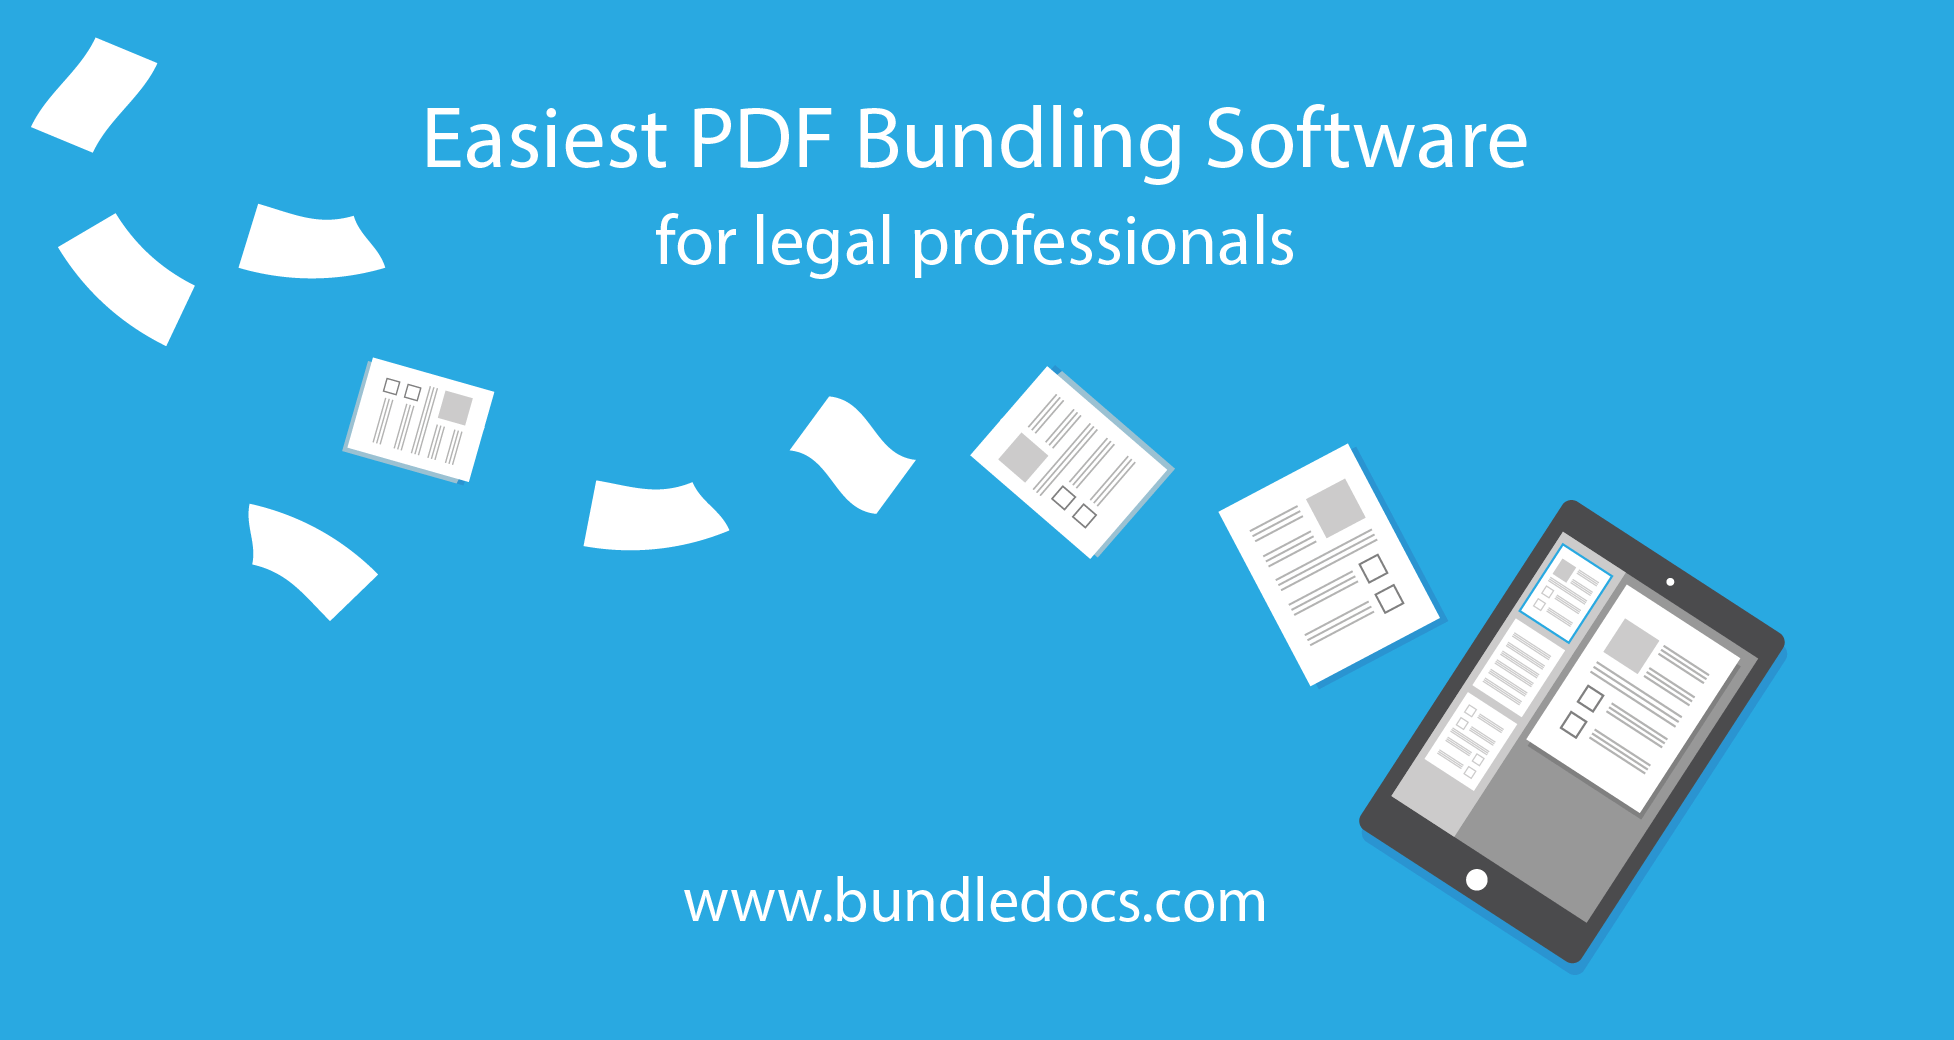 Easiest_PDF_Bundling_Software_for_Legal_Professionals.png